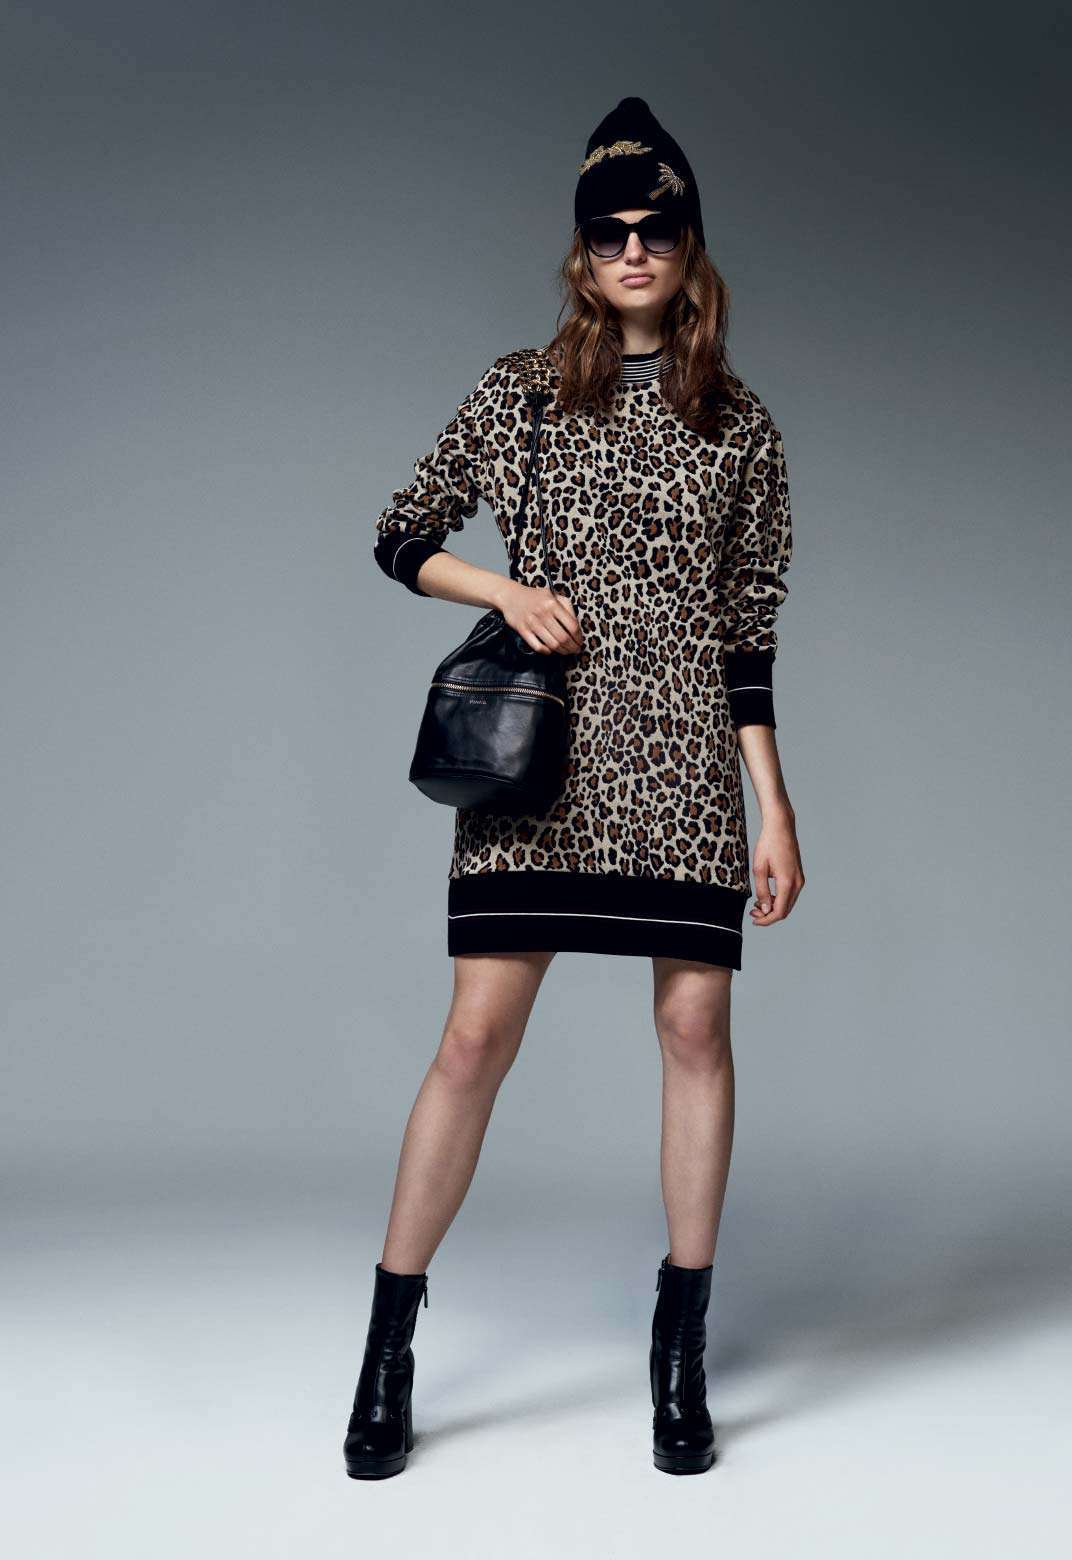 Minidress animalier